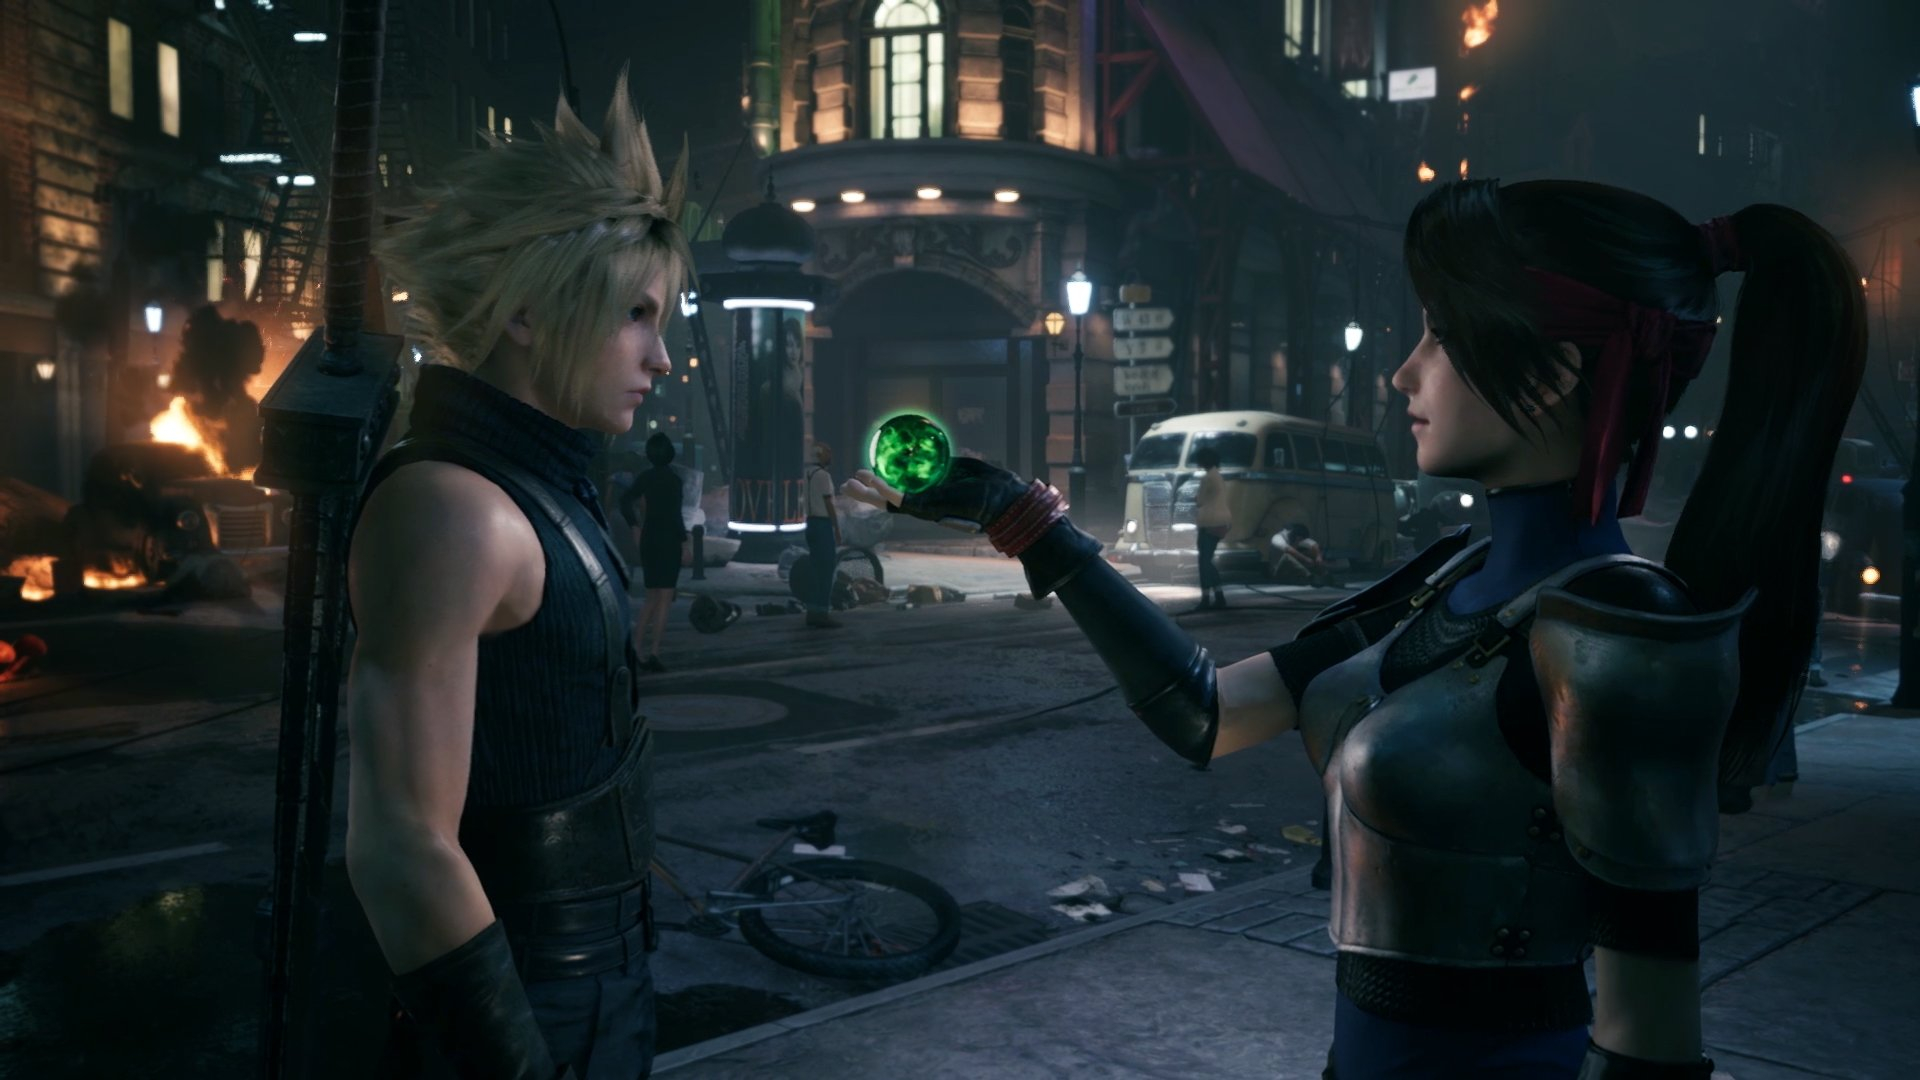 Final Fantasy VII Remake named Best of Show at E3 2019